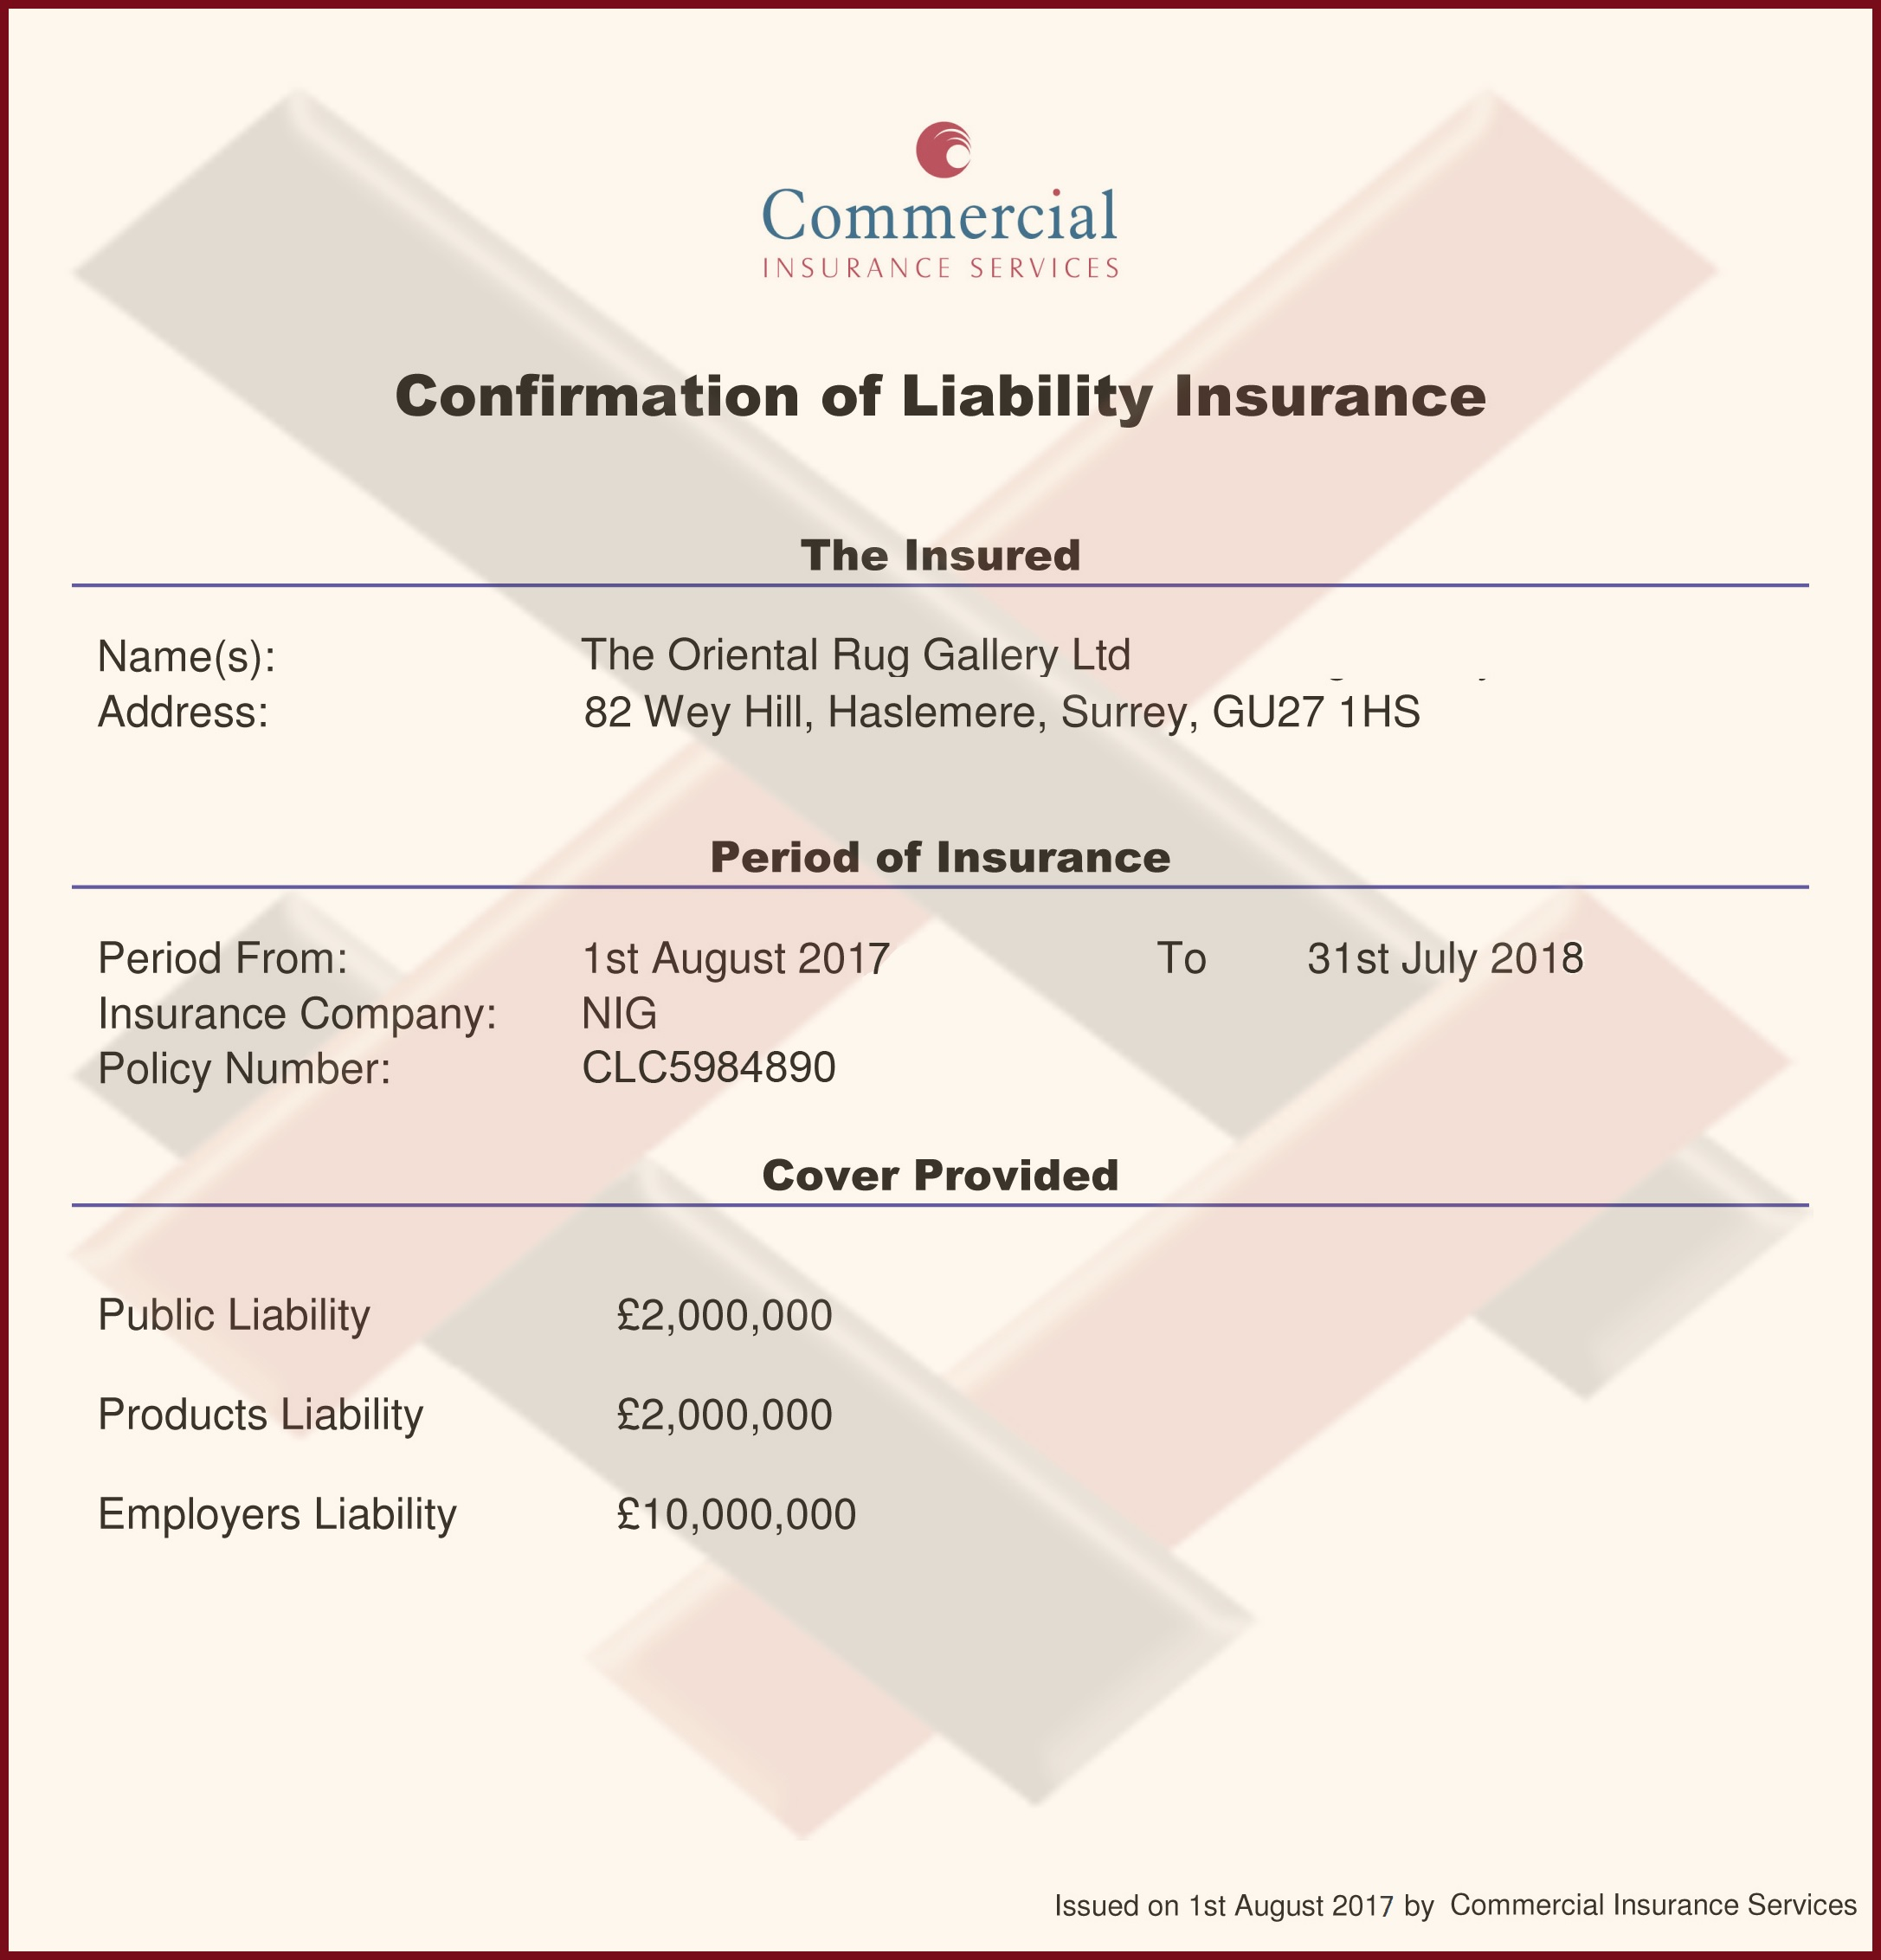 The Oriental Rug Gallery Ltd Certified Insurance Liability 2016-17